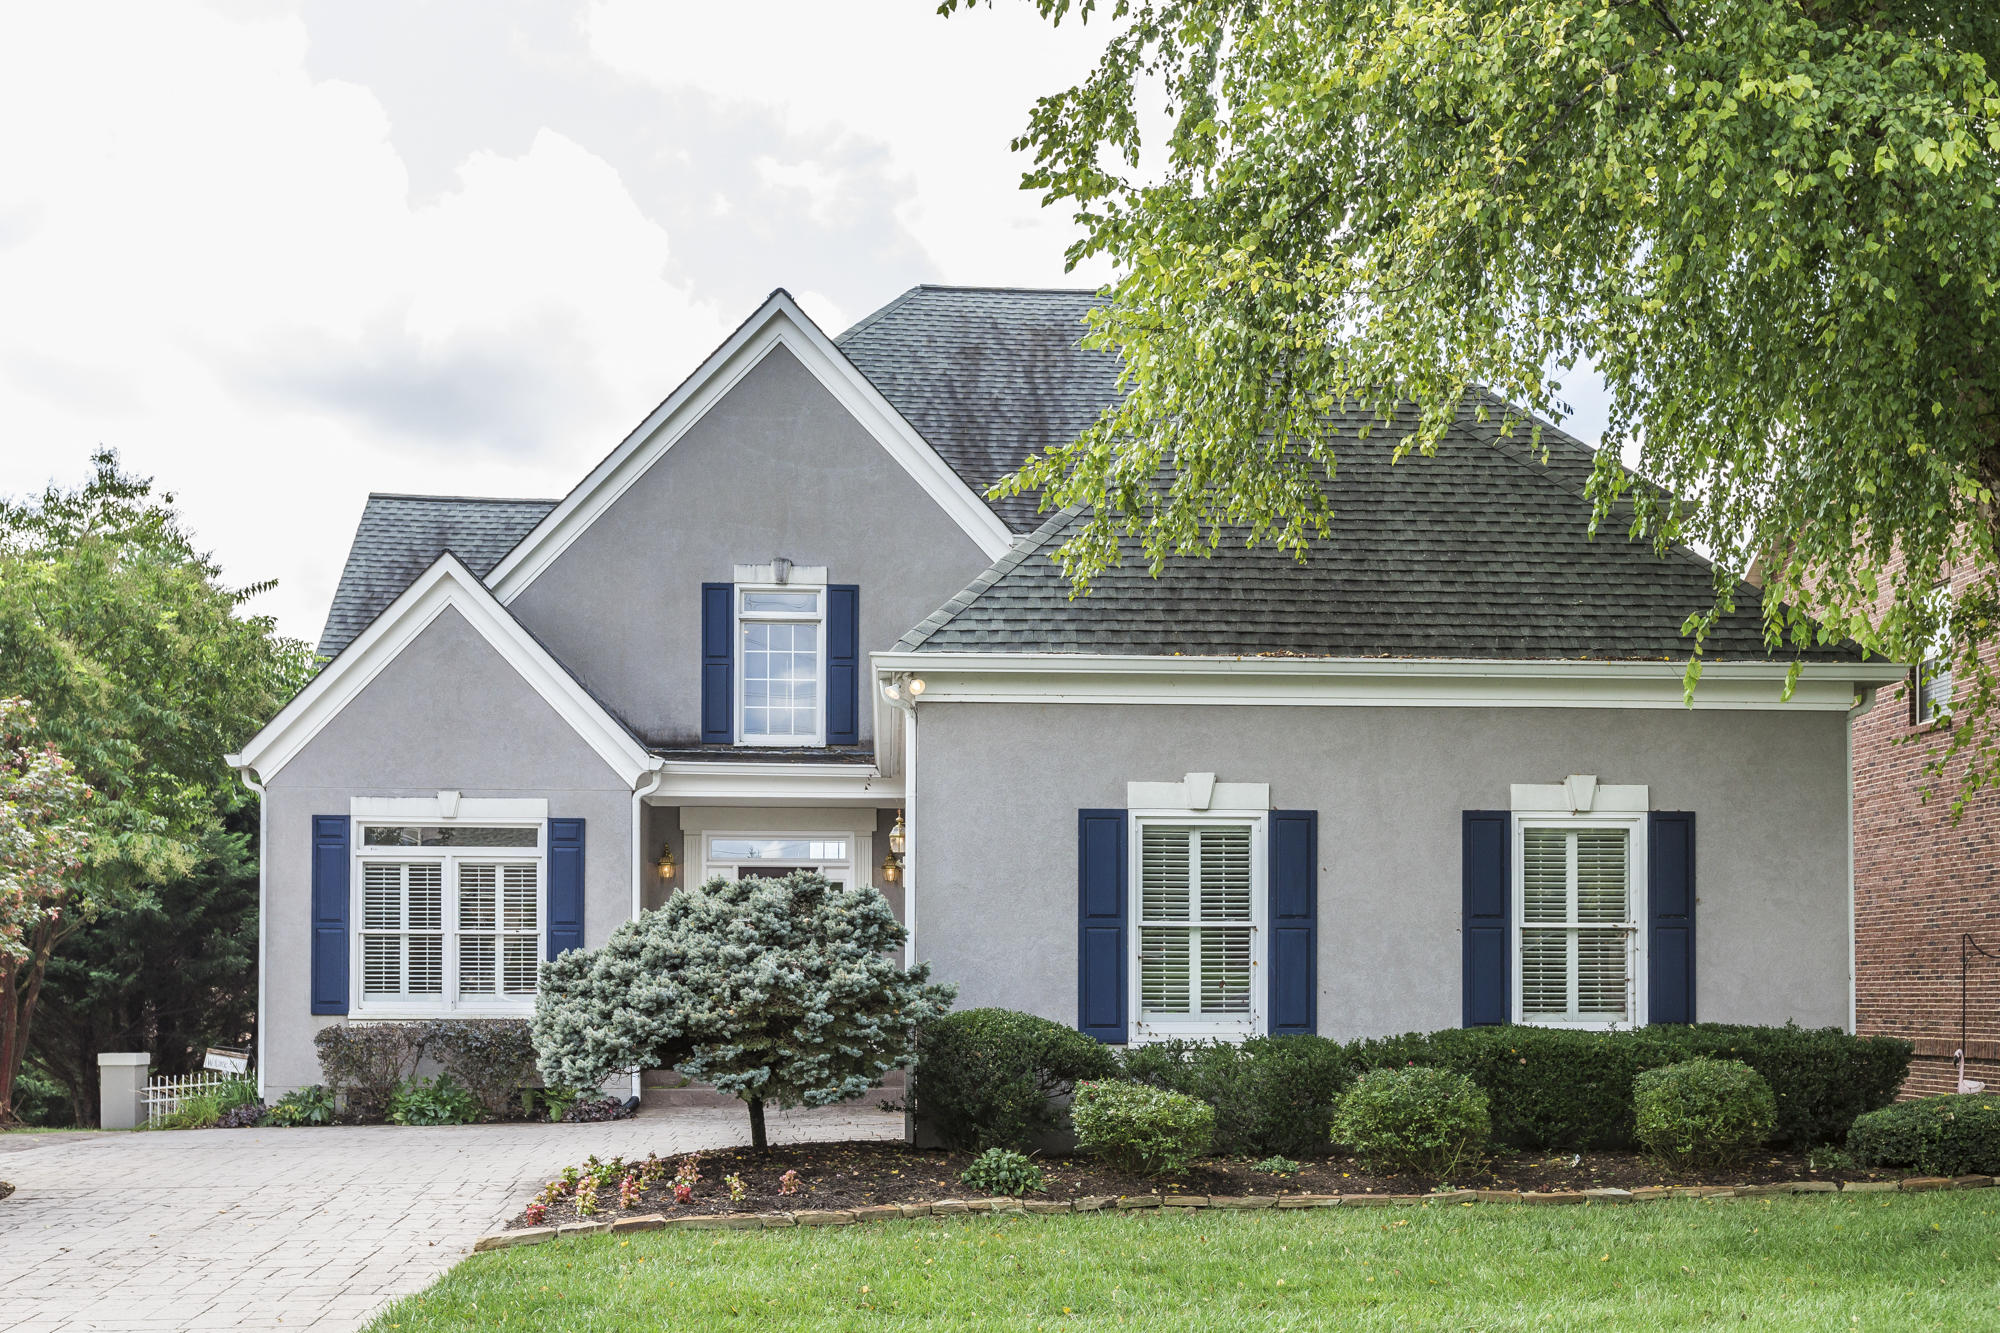 9849 GIVERNY CIRCLE, KNOXVILLE, TN 37922